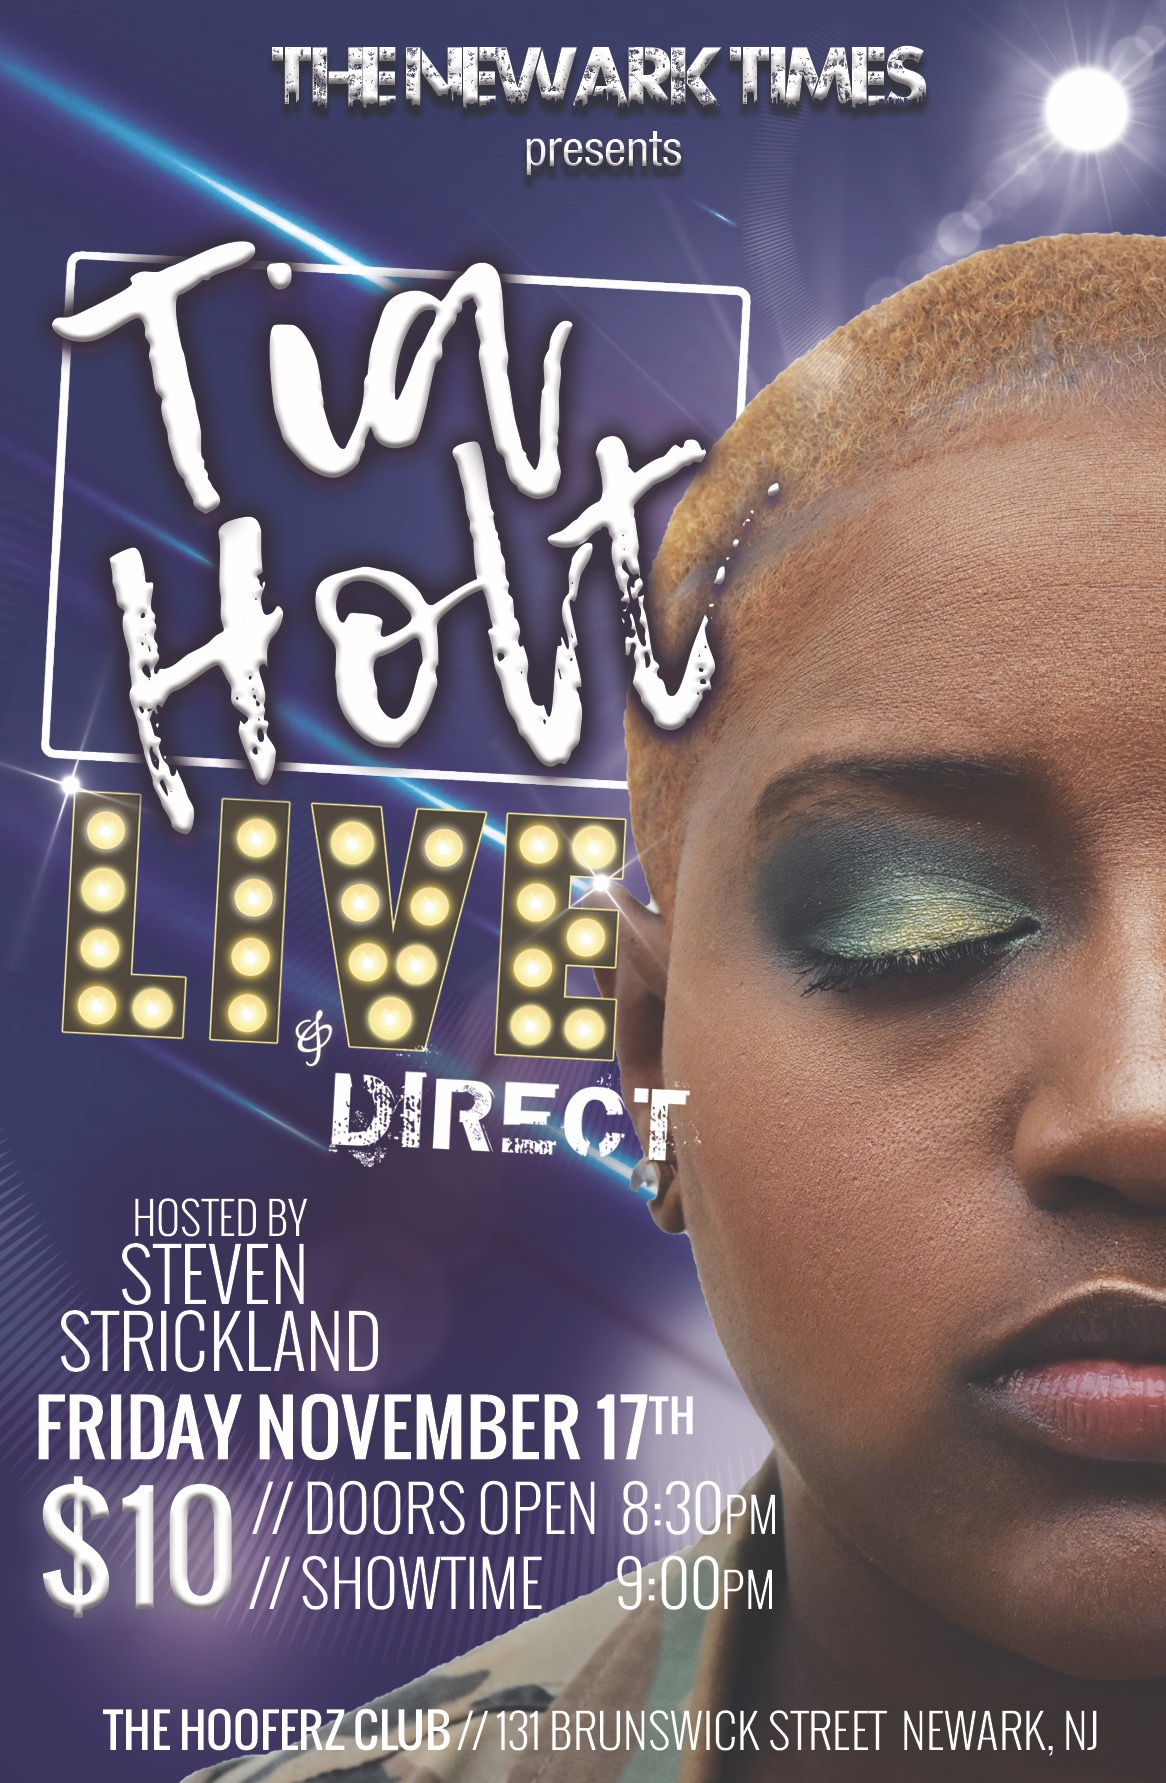 The Newark Times Presents: Tia Holt | LIVE & Direct